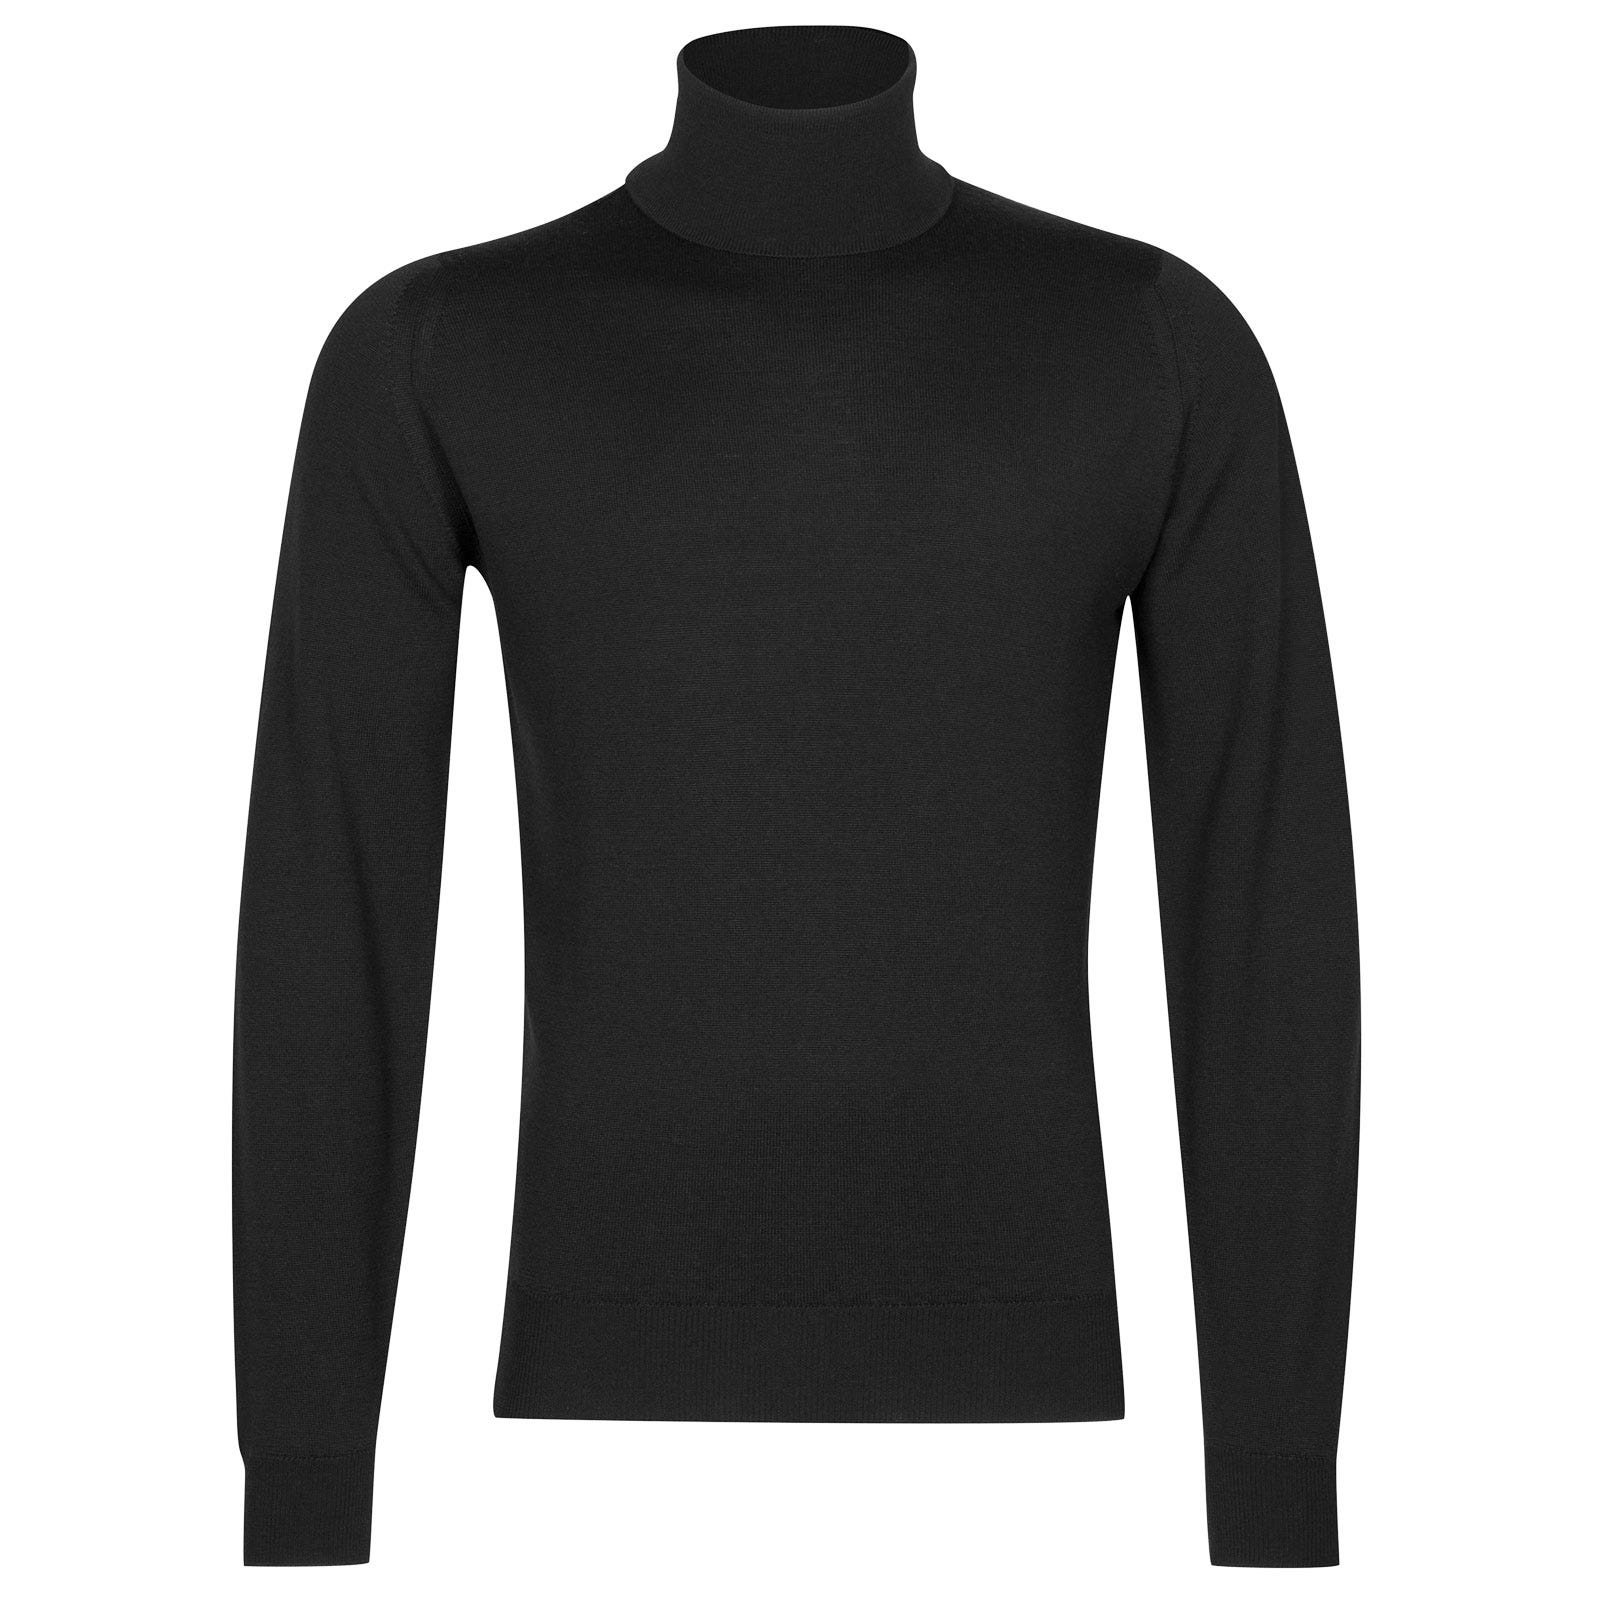 John Smedley connell Merino Wool Pullover in Black-S